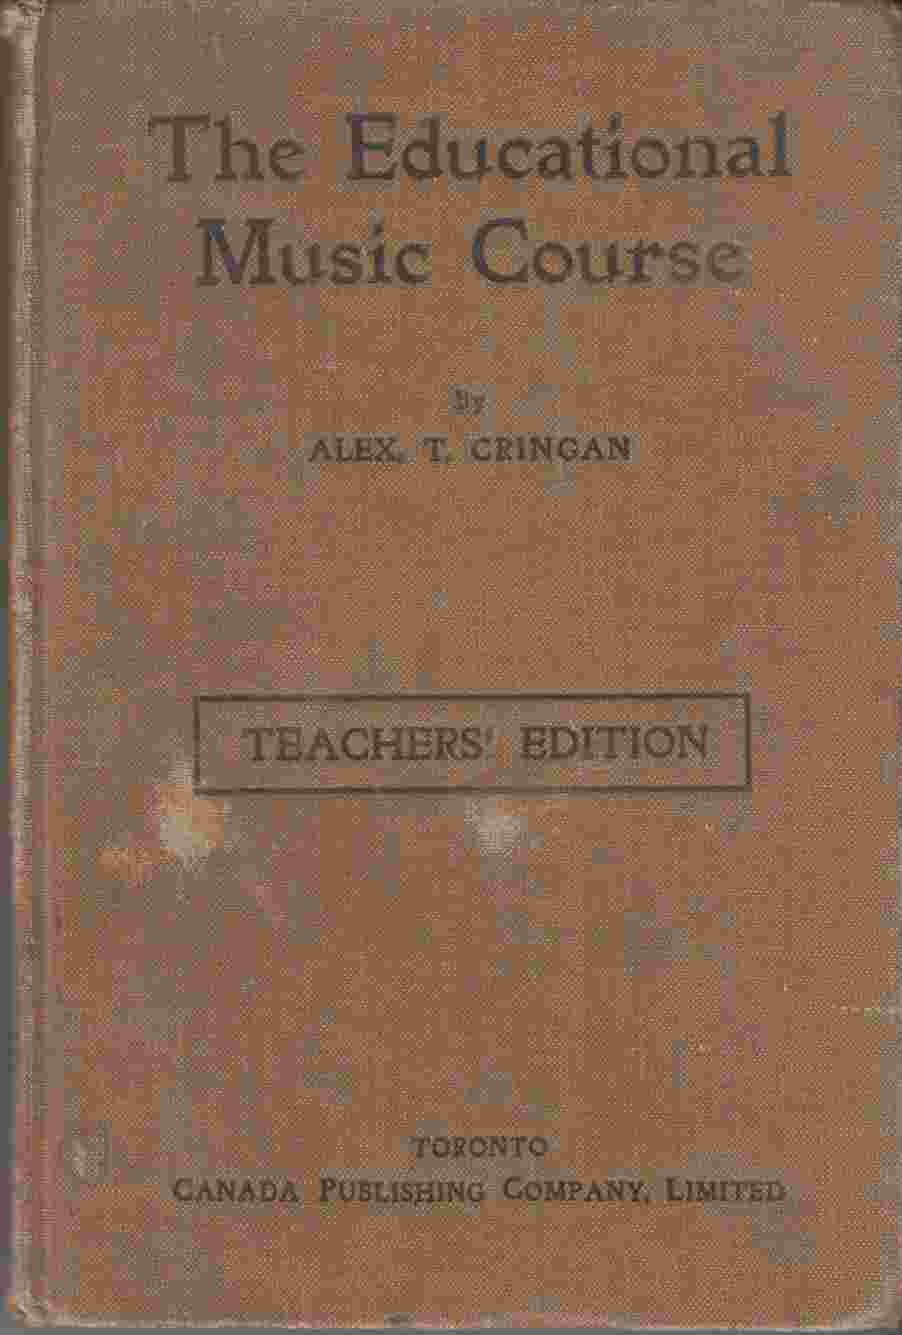 Image for The Educational Music Course Teachers' Edition